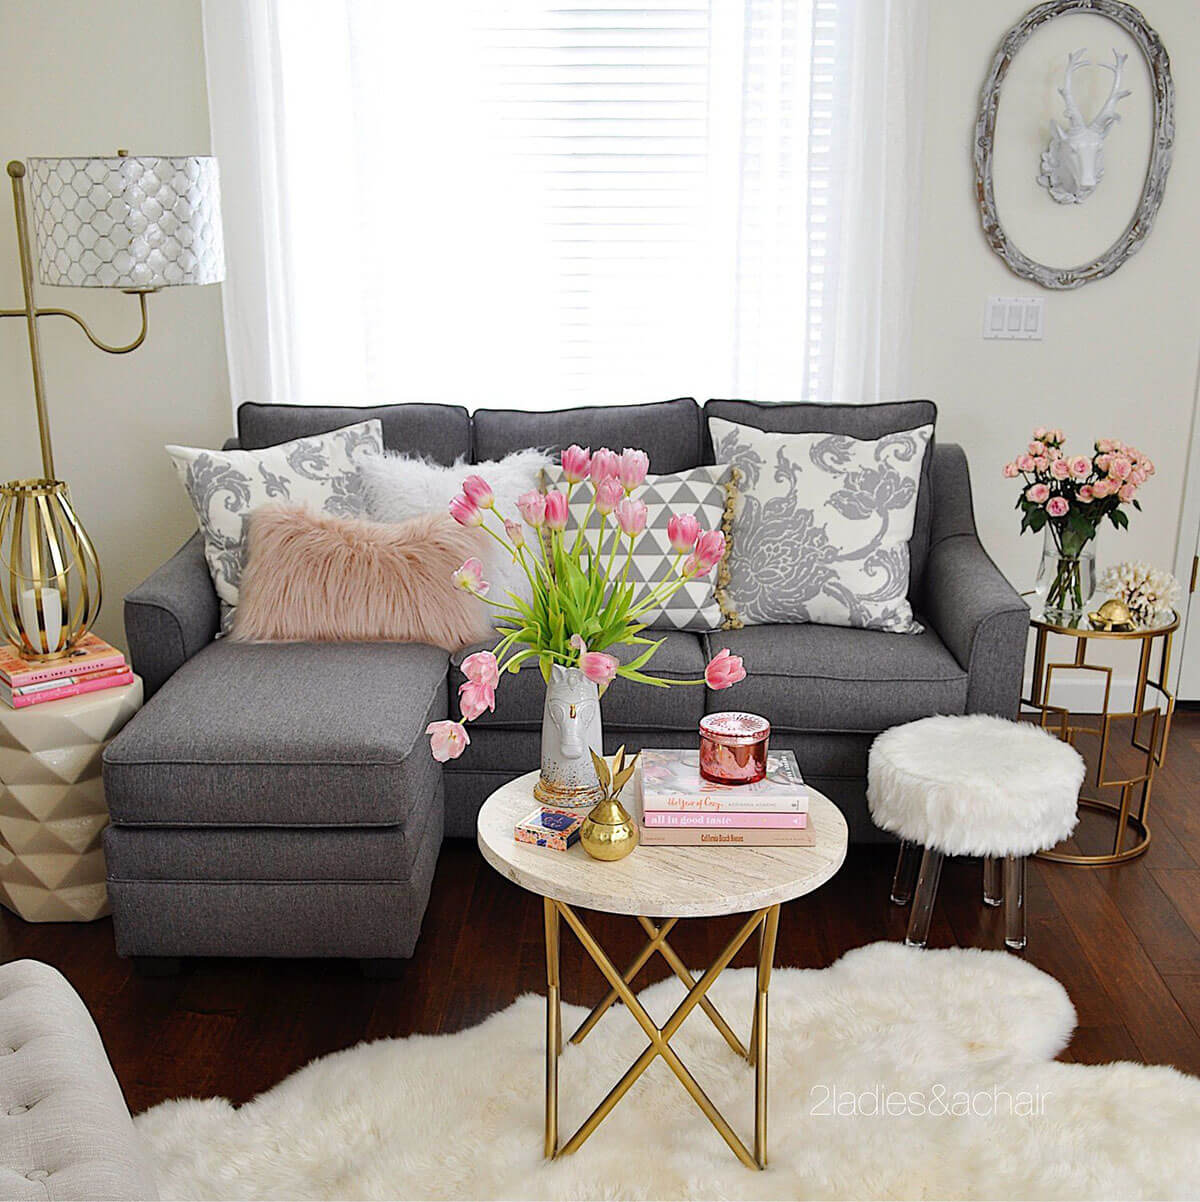 Living Room Theme Ideas: 25+ Best Small Living Room Decor And Design Ideas For 2019